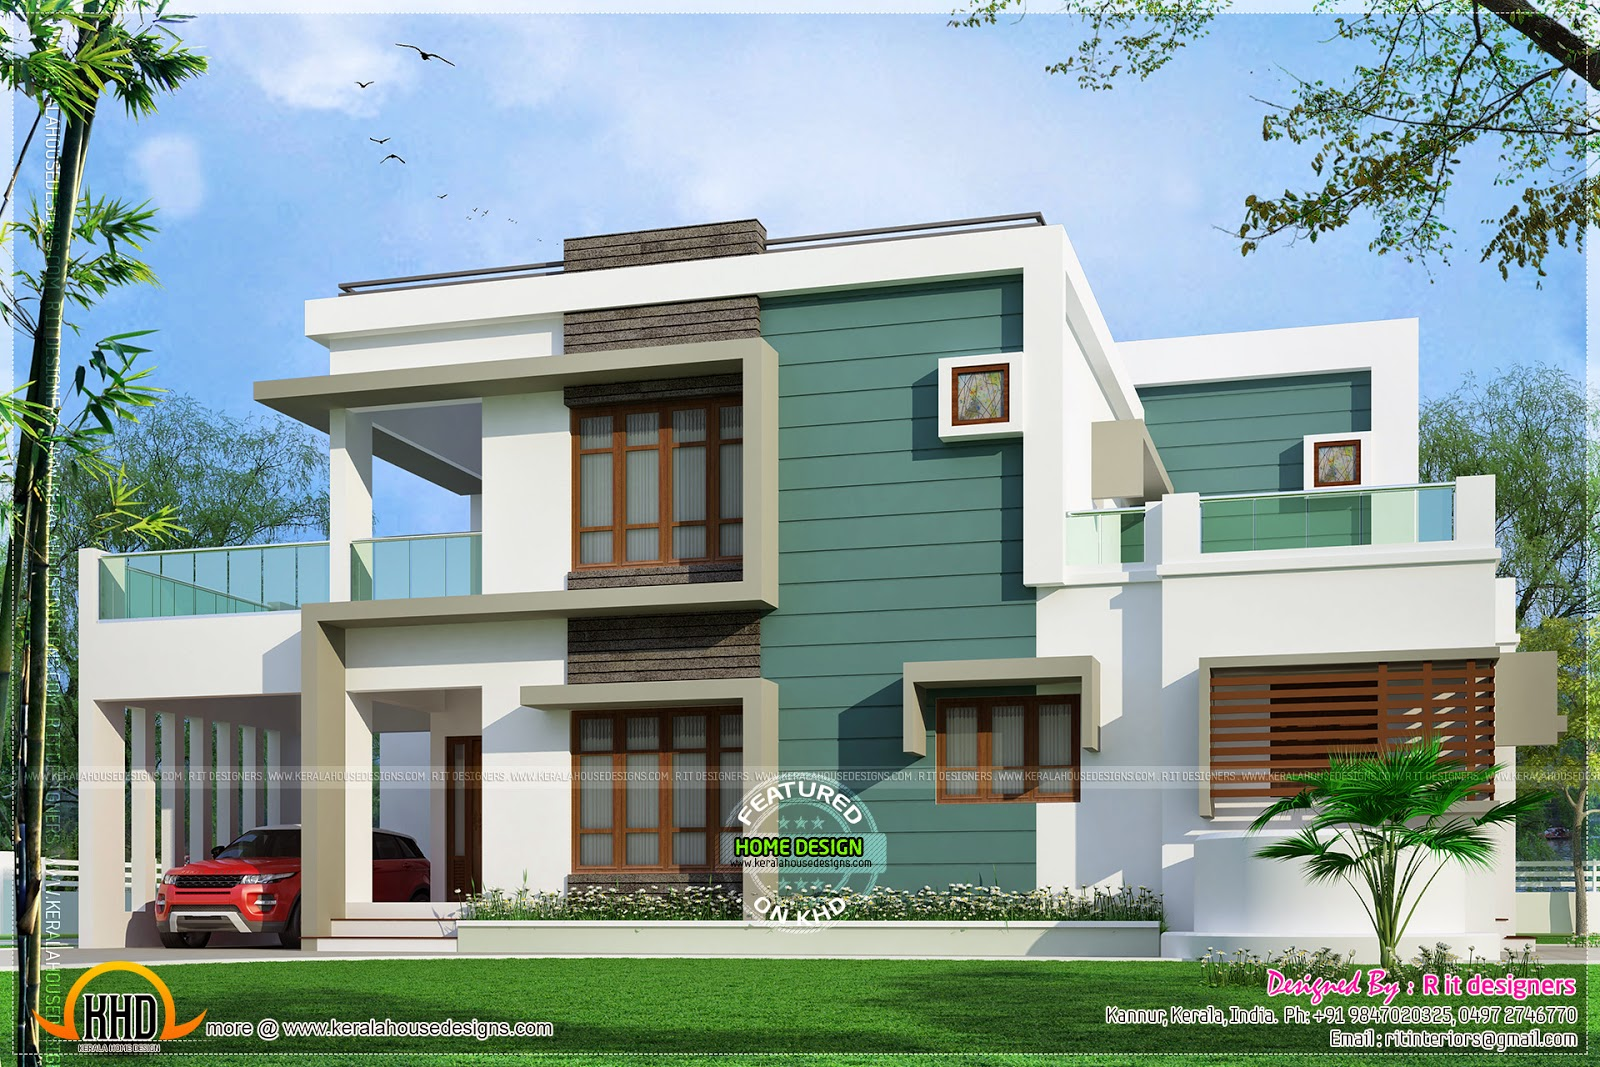 Kannur home design kerala home design and floor plans for Small contemporary house plans in kerala